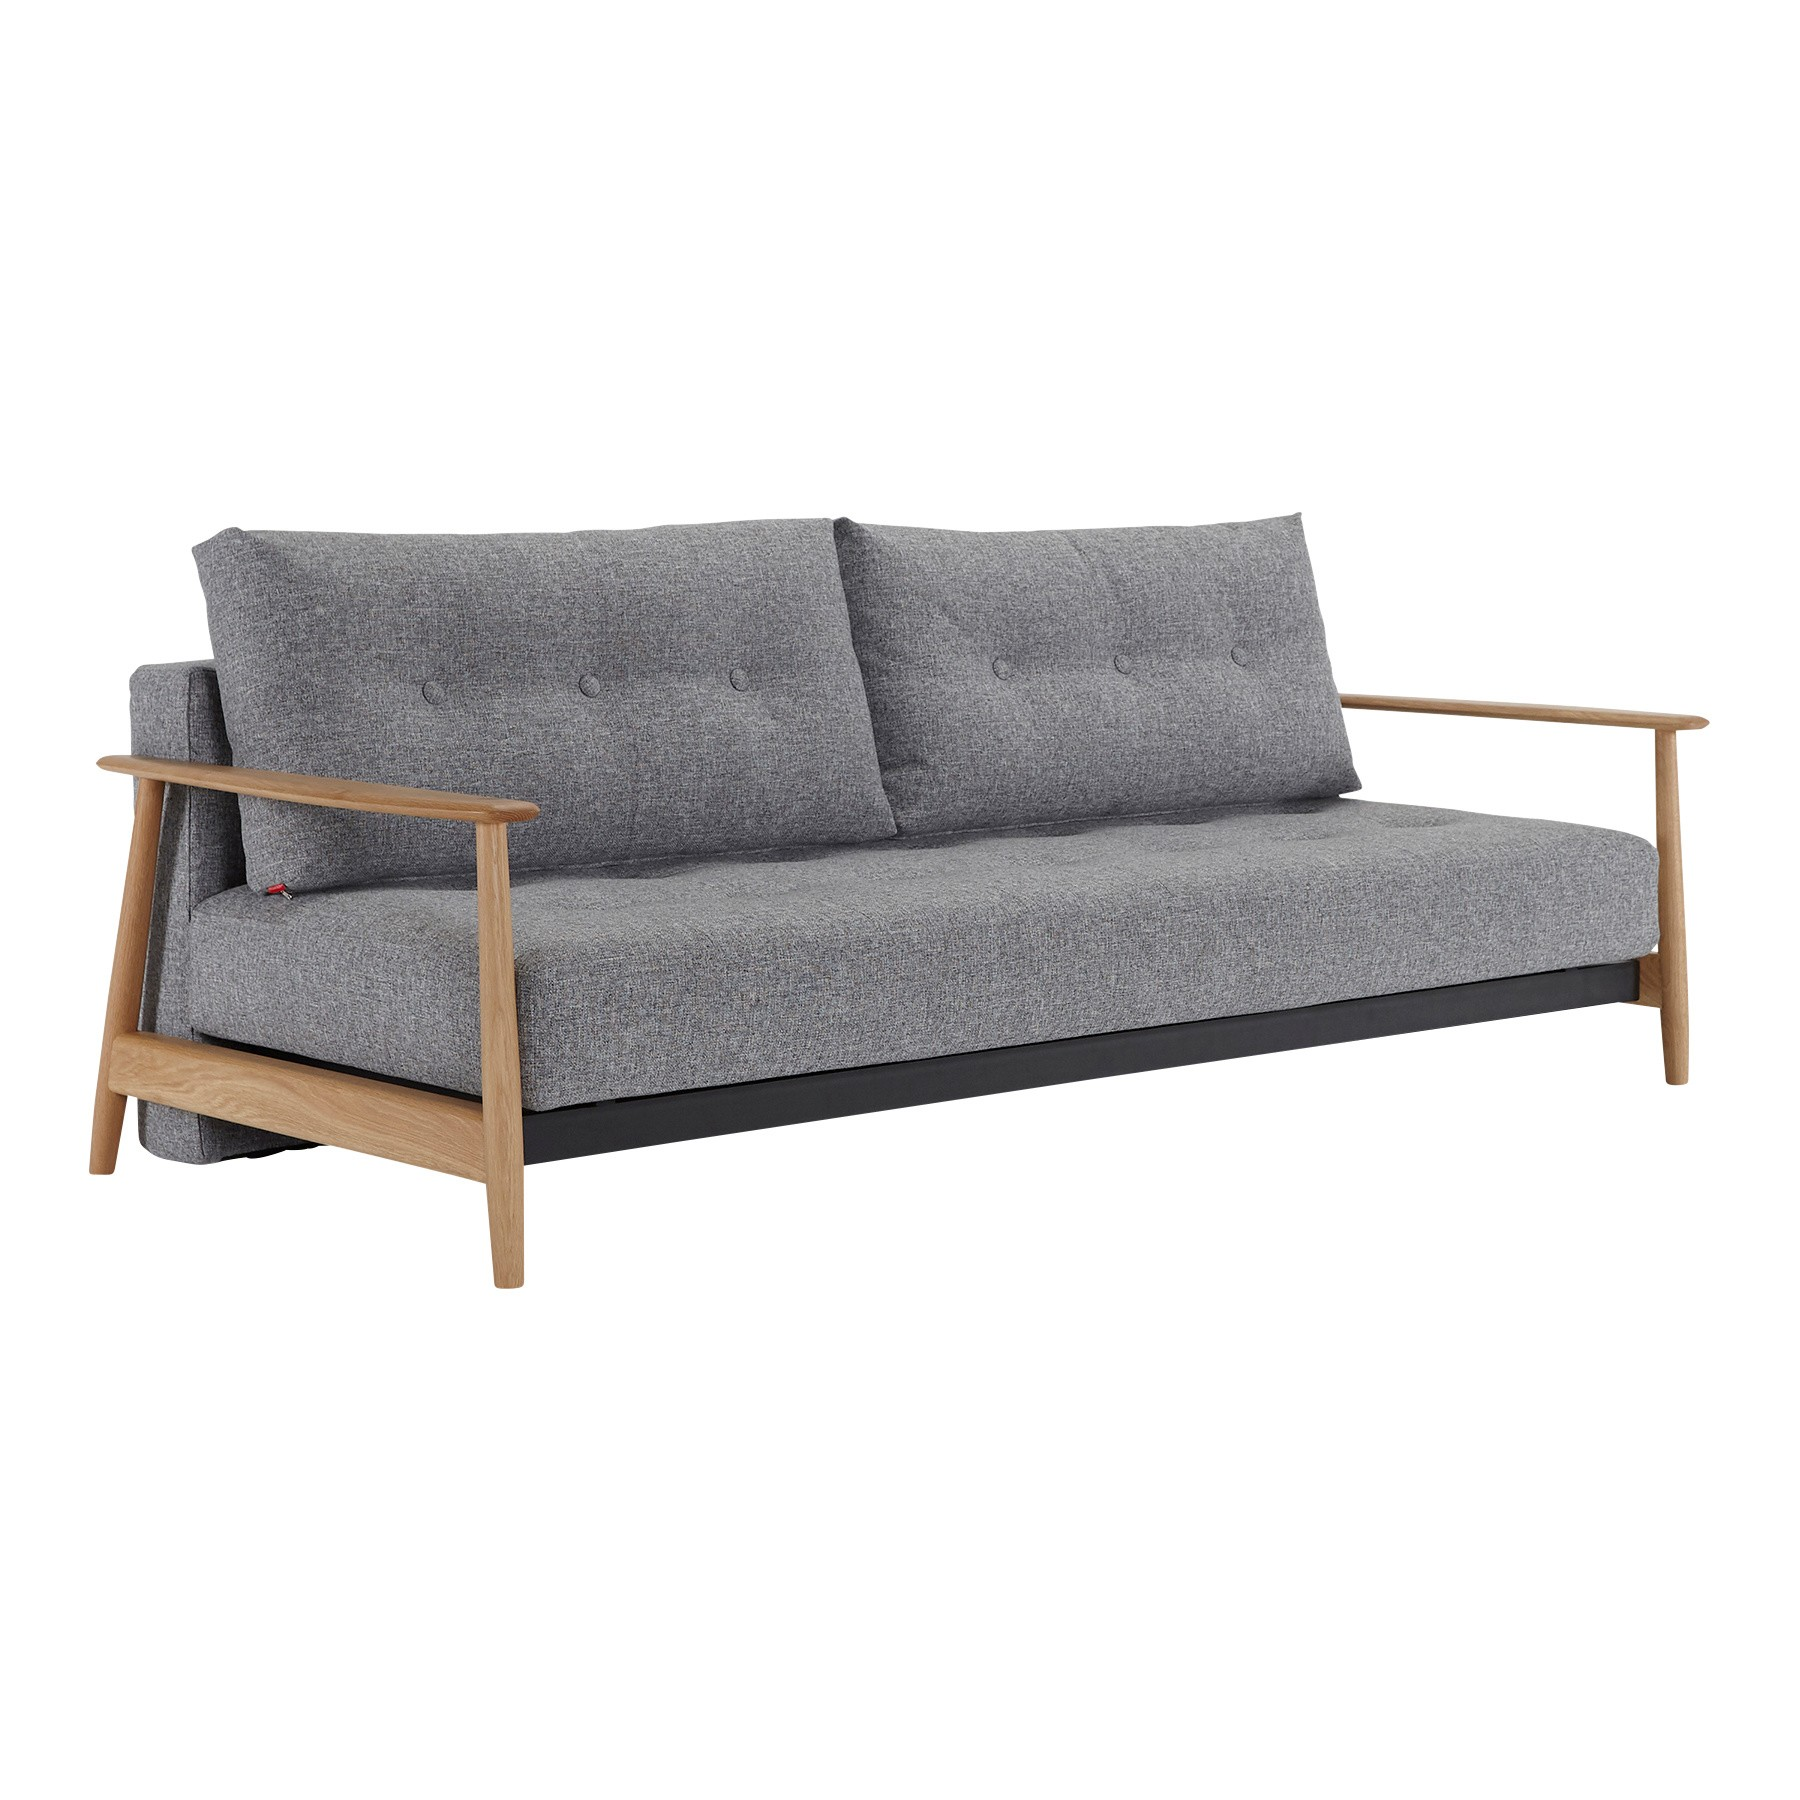 Schlafsofas Sale Eluma Deluxe Button Sofa Bed 224x94cm